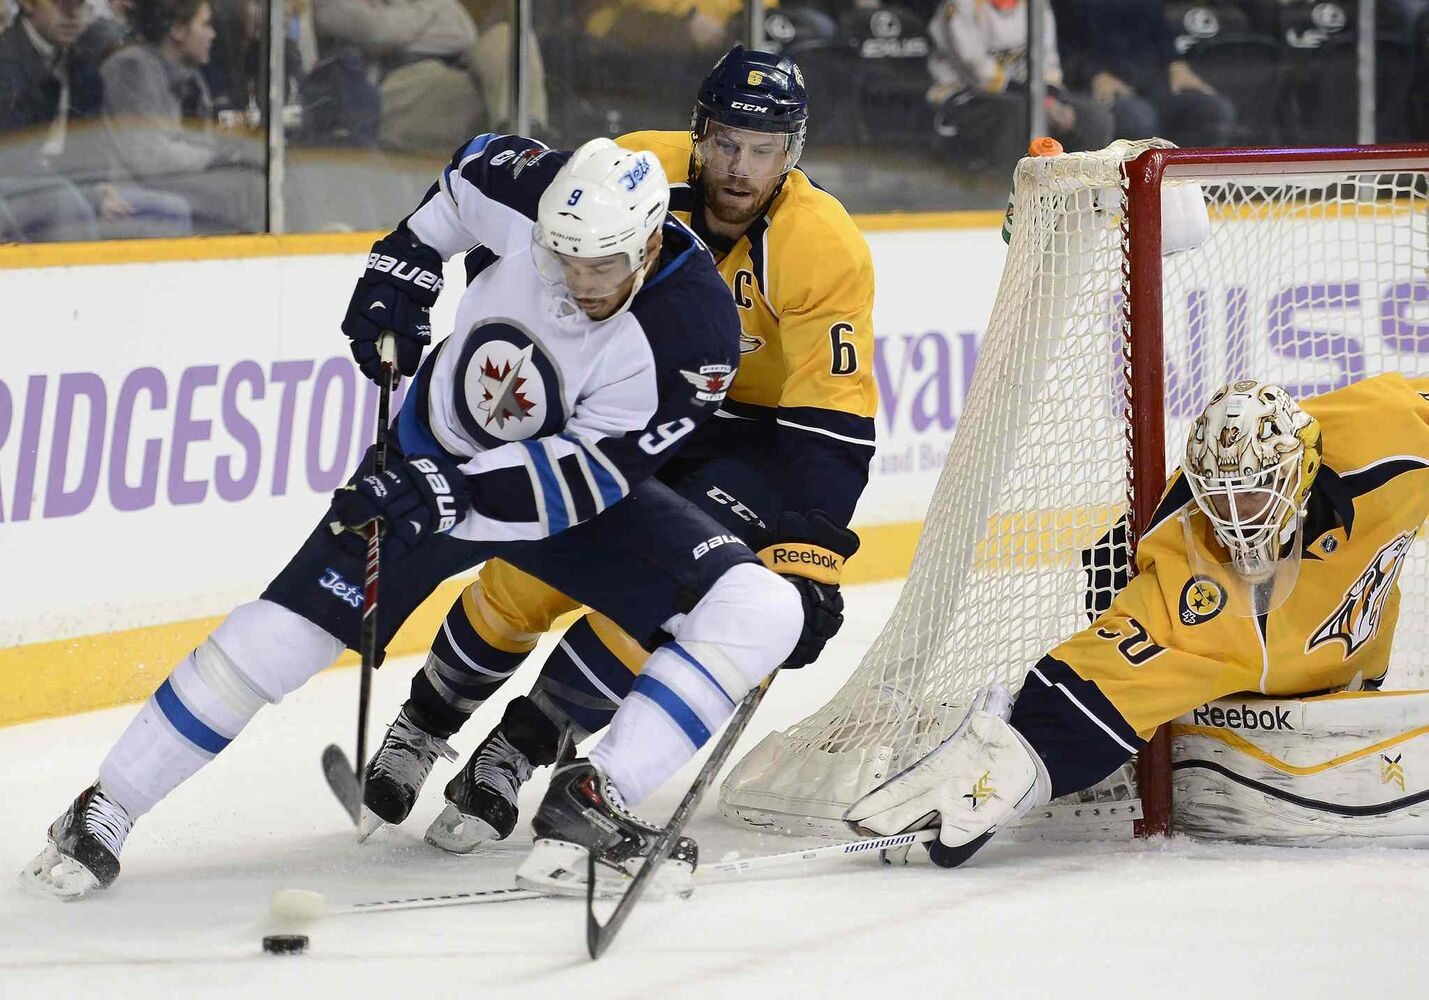 Winnipeg Jets' left wing Evander Kane (9) brings the puck around the net as he is defended by Nashville Predators defenseman Shea Weber (6) and goalie Carter Hutton (30) during the first period of Saturday's game.